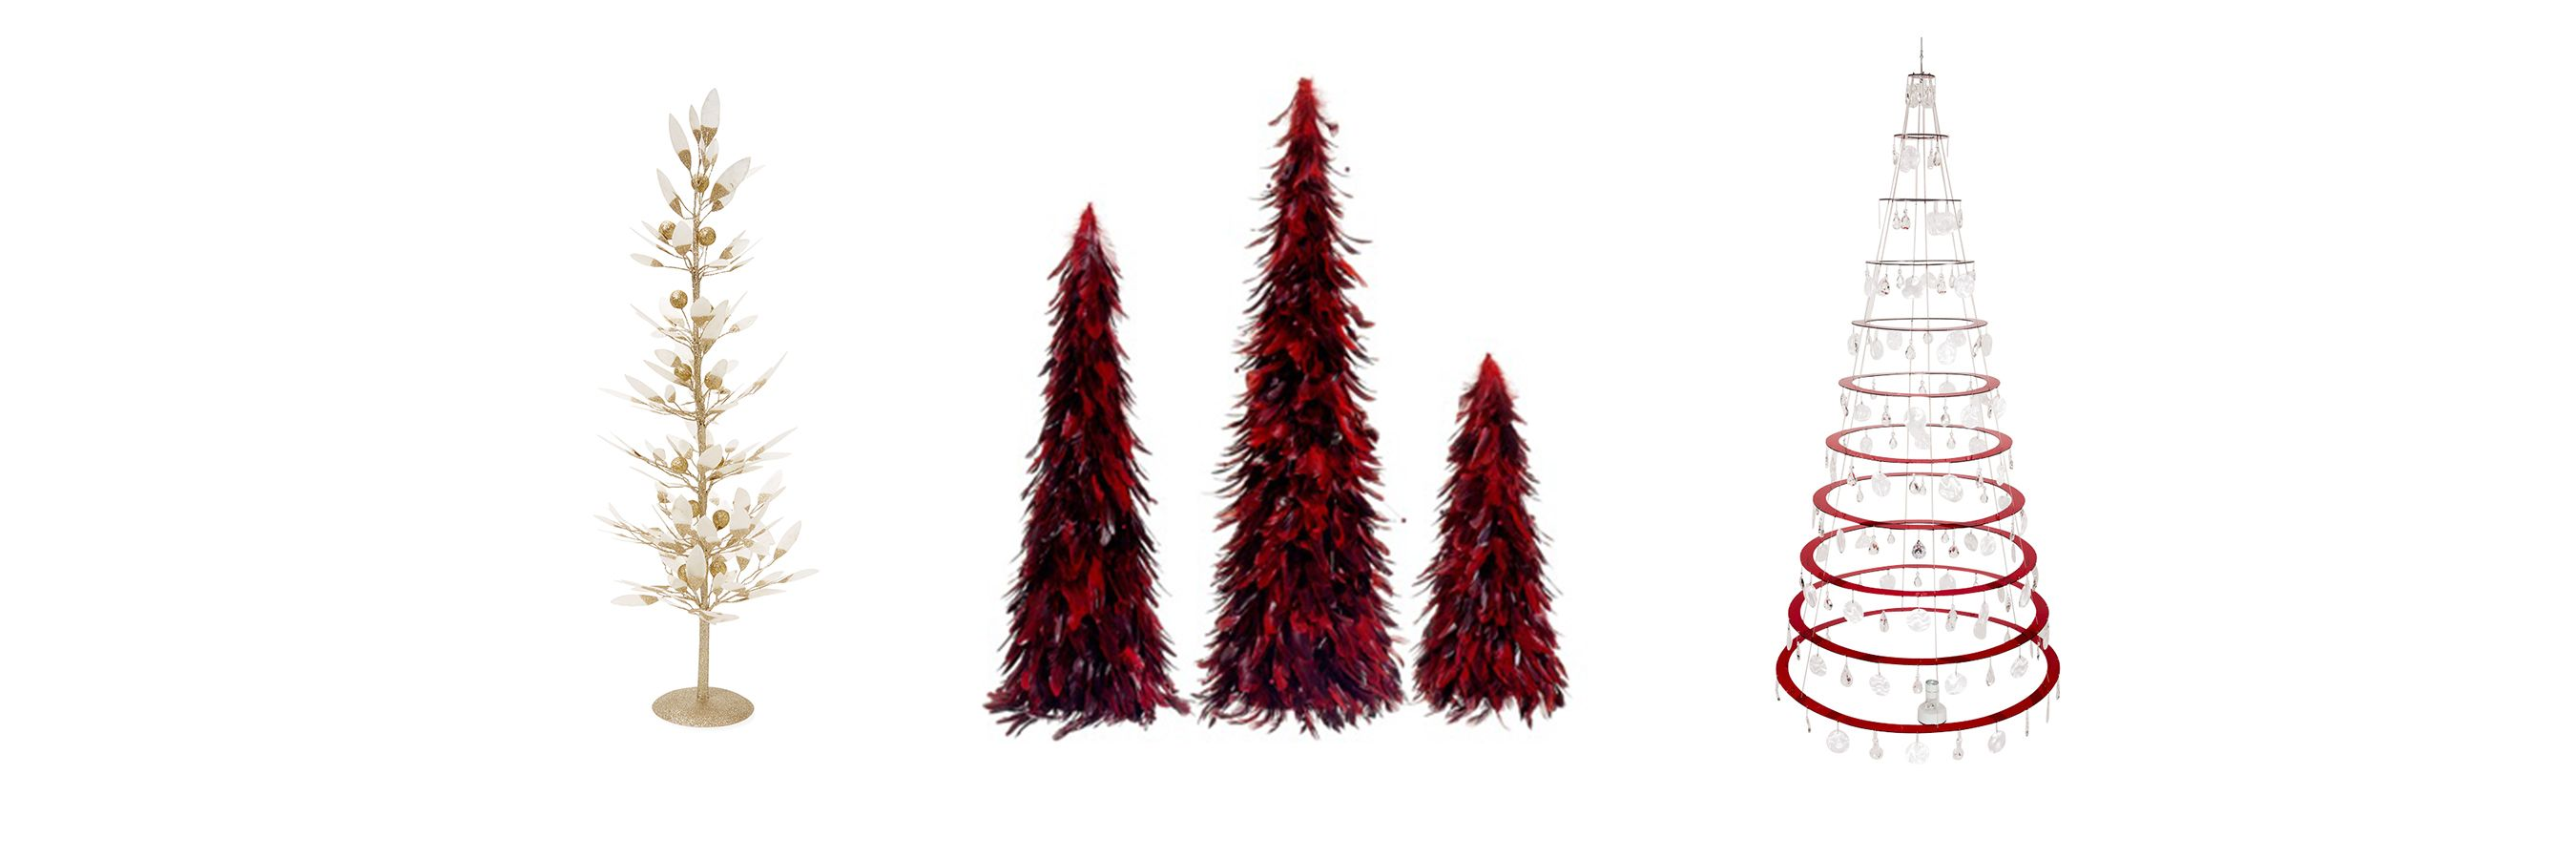 27 Modern Christmas Trees For Holiday Decorations Contemporary